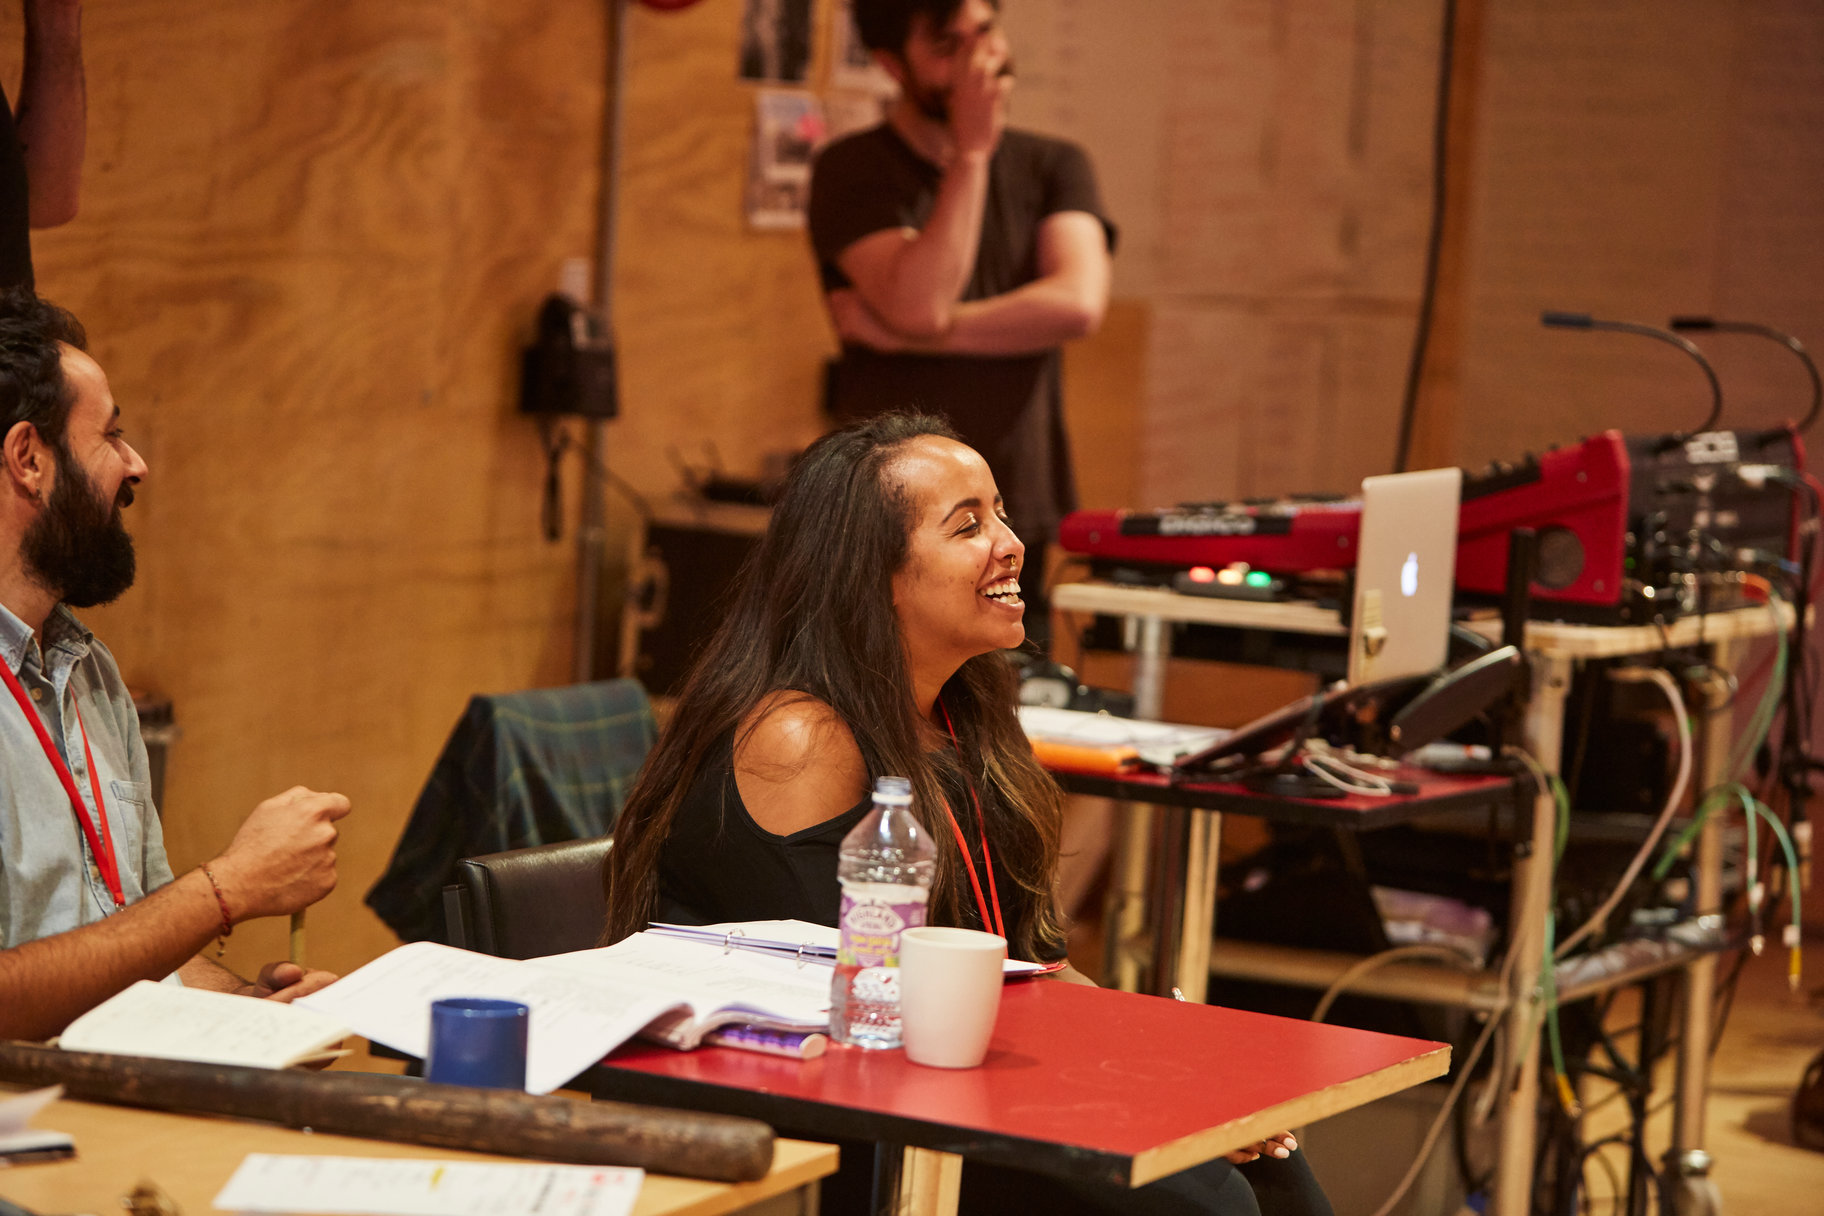 Young woman sitting behind a desk in a rehearsal room and laughing